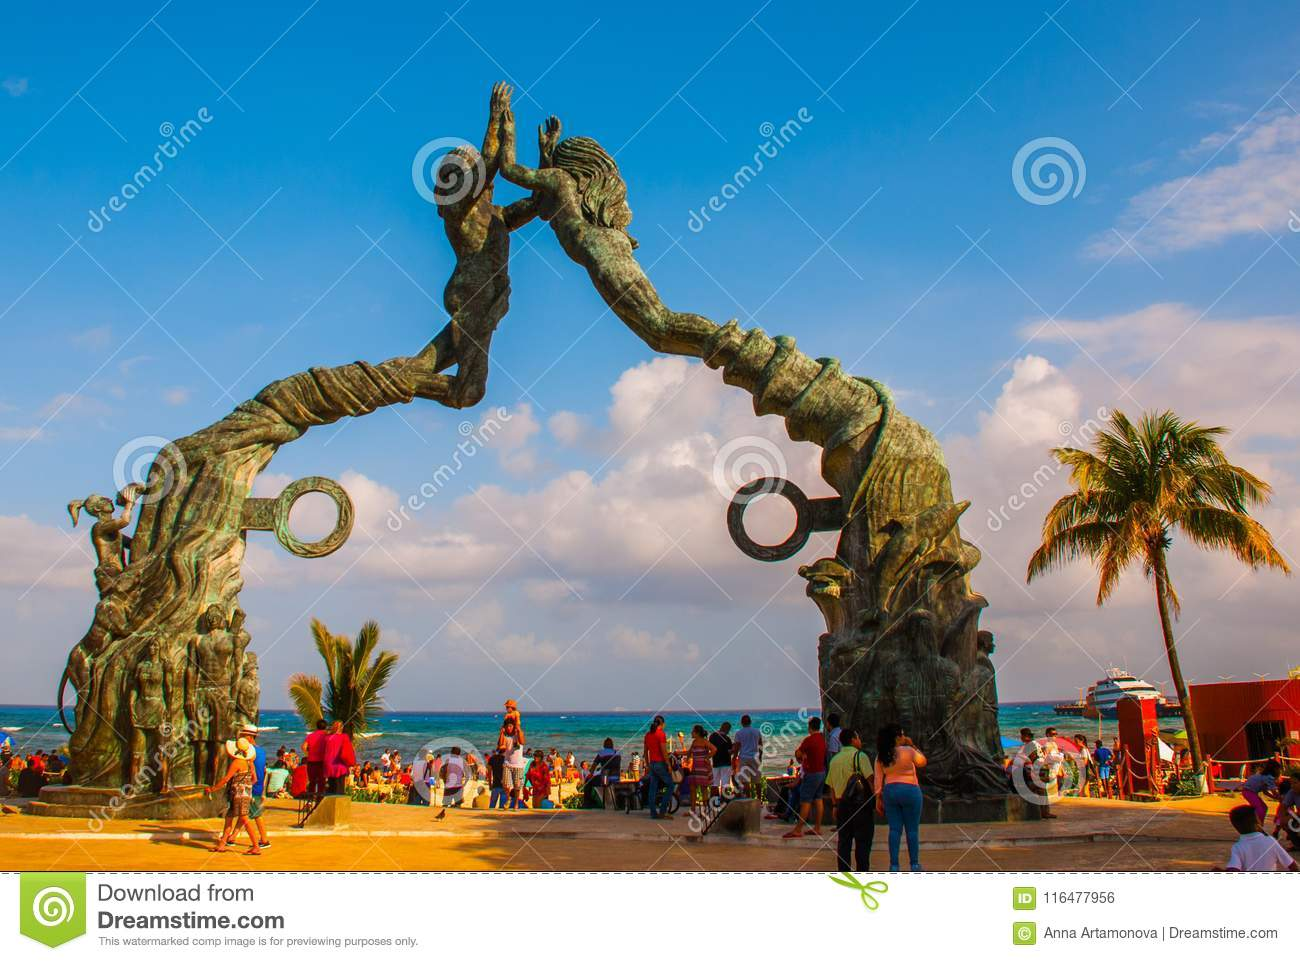 Playa del Carmen, Riviera Maya, Mexico: People on the beach in Playa del Carmen. Entrance to the beach in the form of sculptures o